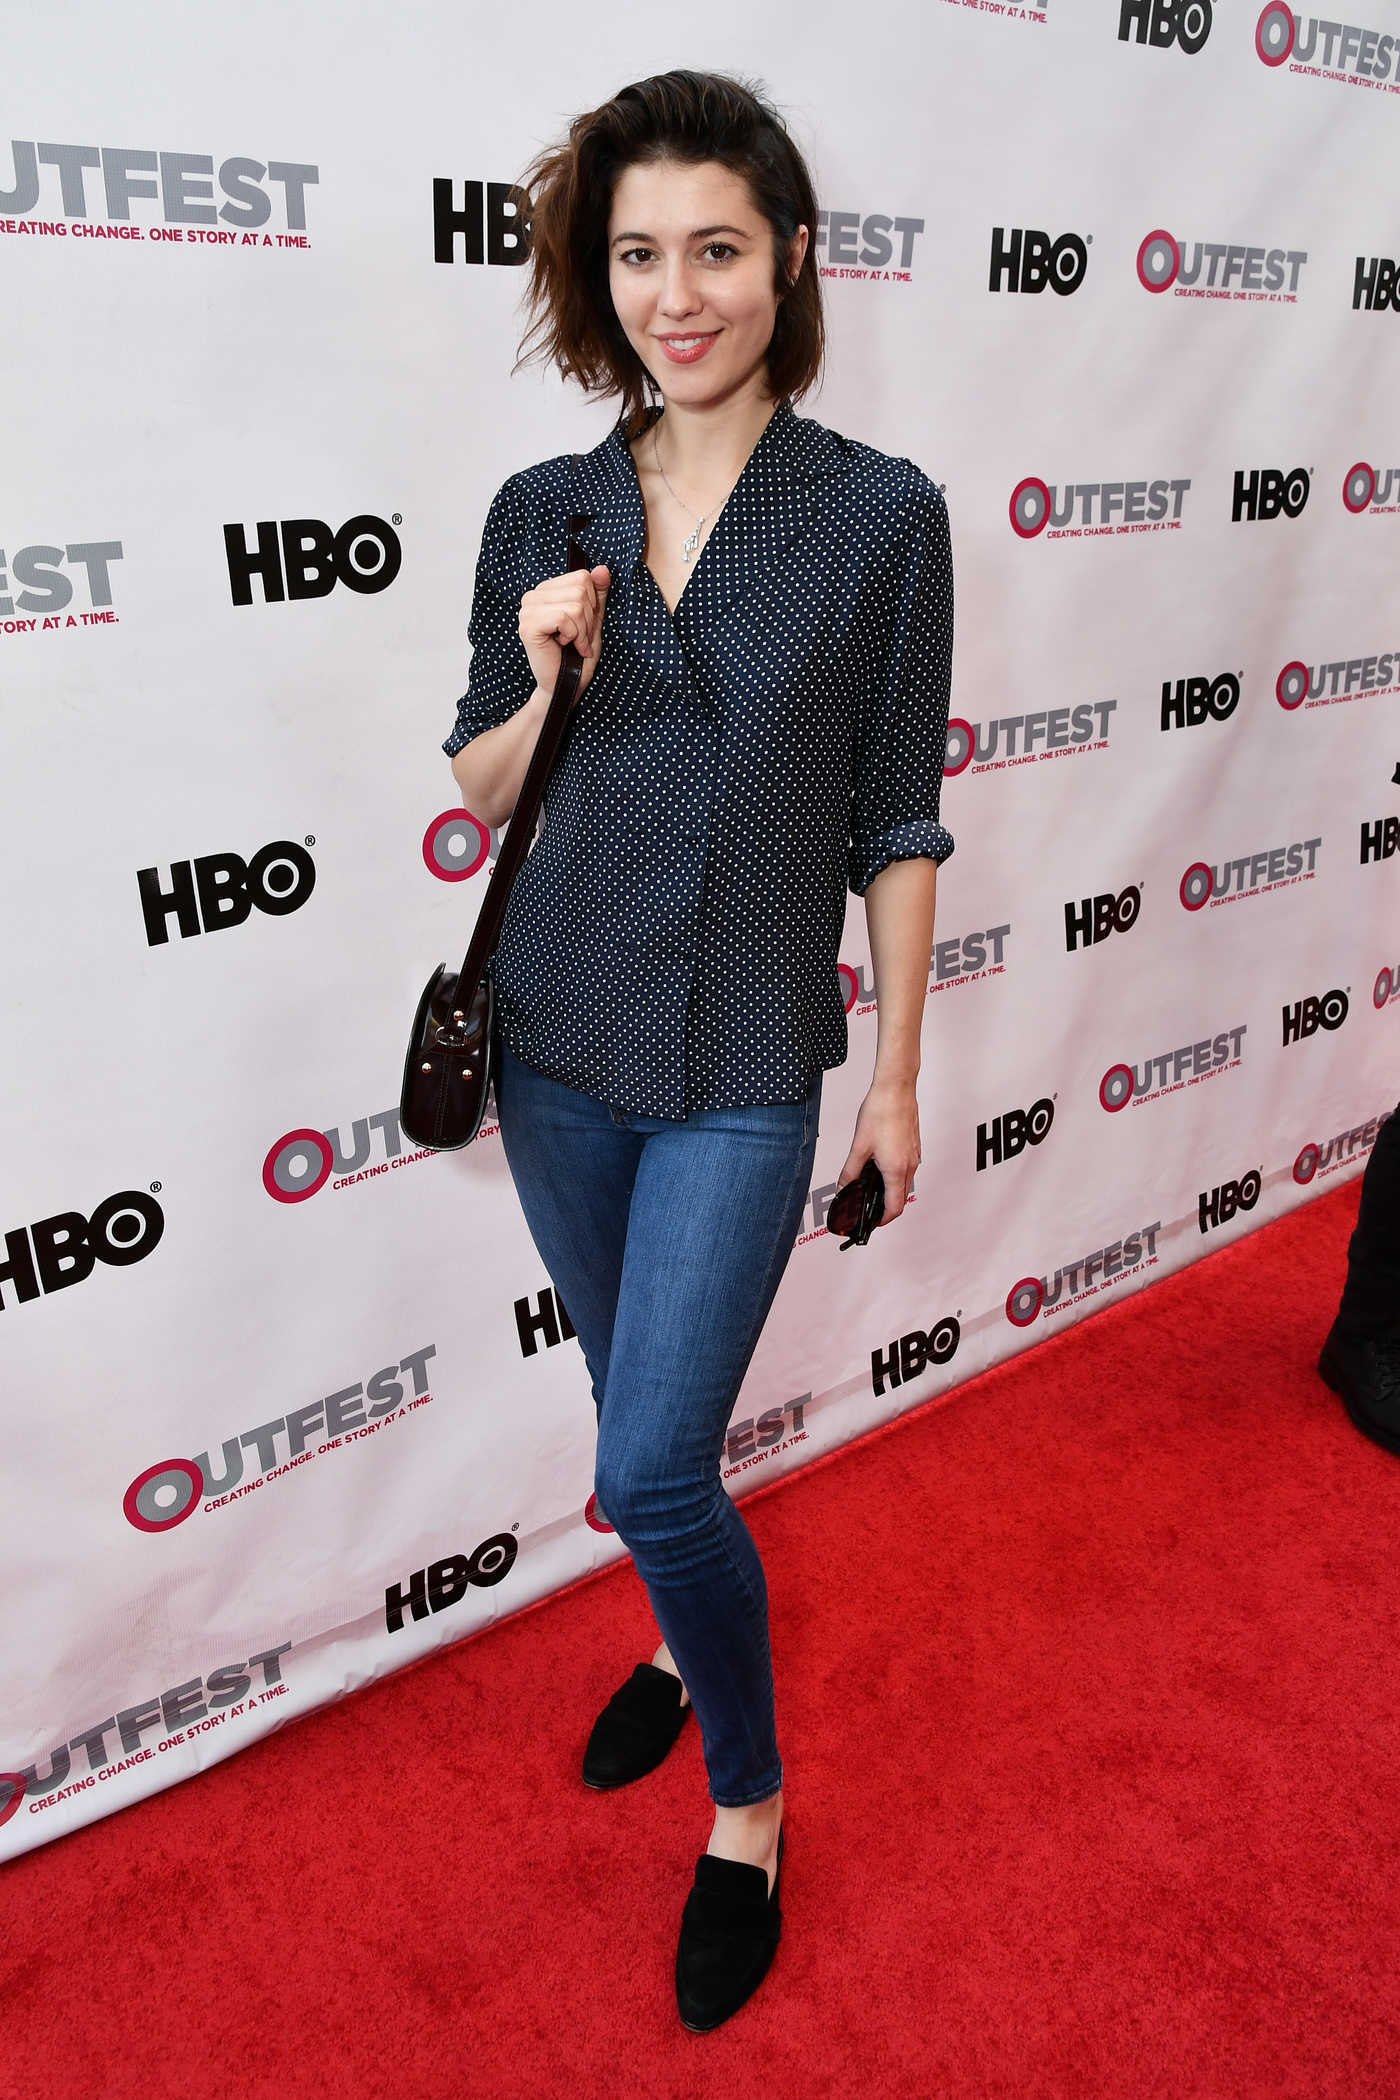 Mary Elizabeth Winstead at the God's Own Country Premiere at Outfest Los Angeles LGBT Film Festival 07/06/2017